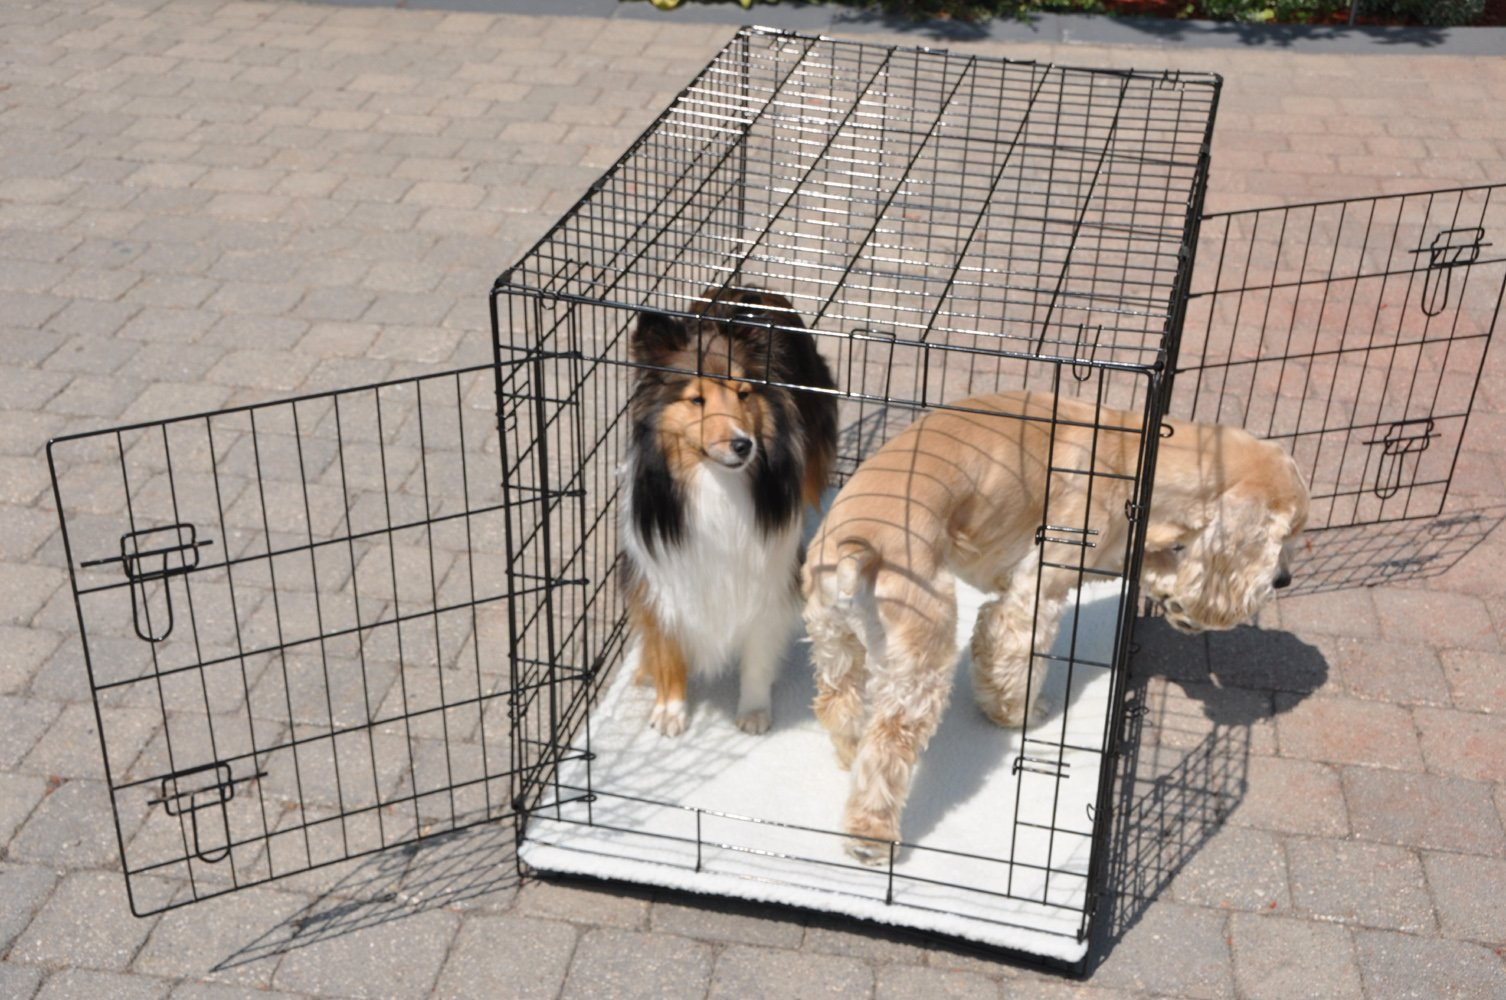 Cool Runners Tall Boy Large Wire Pet Crate 30'' x 21'' x 24'' With Bonus Faux Sheepskin Mattress by Cool Runners (Image #4)